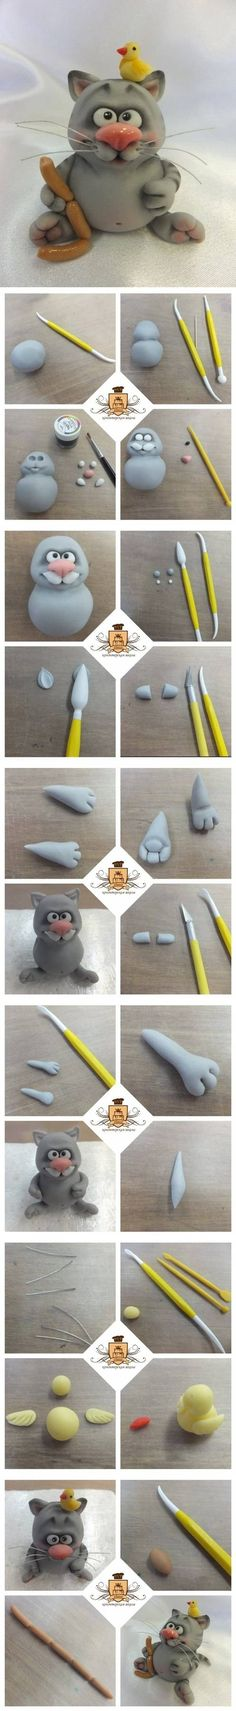 DIY Fondant Cat tutorial